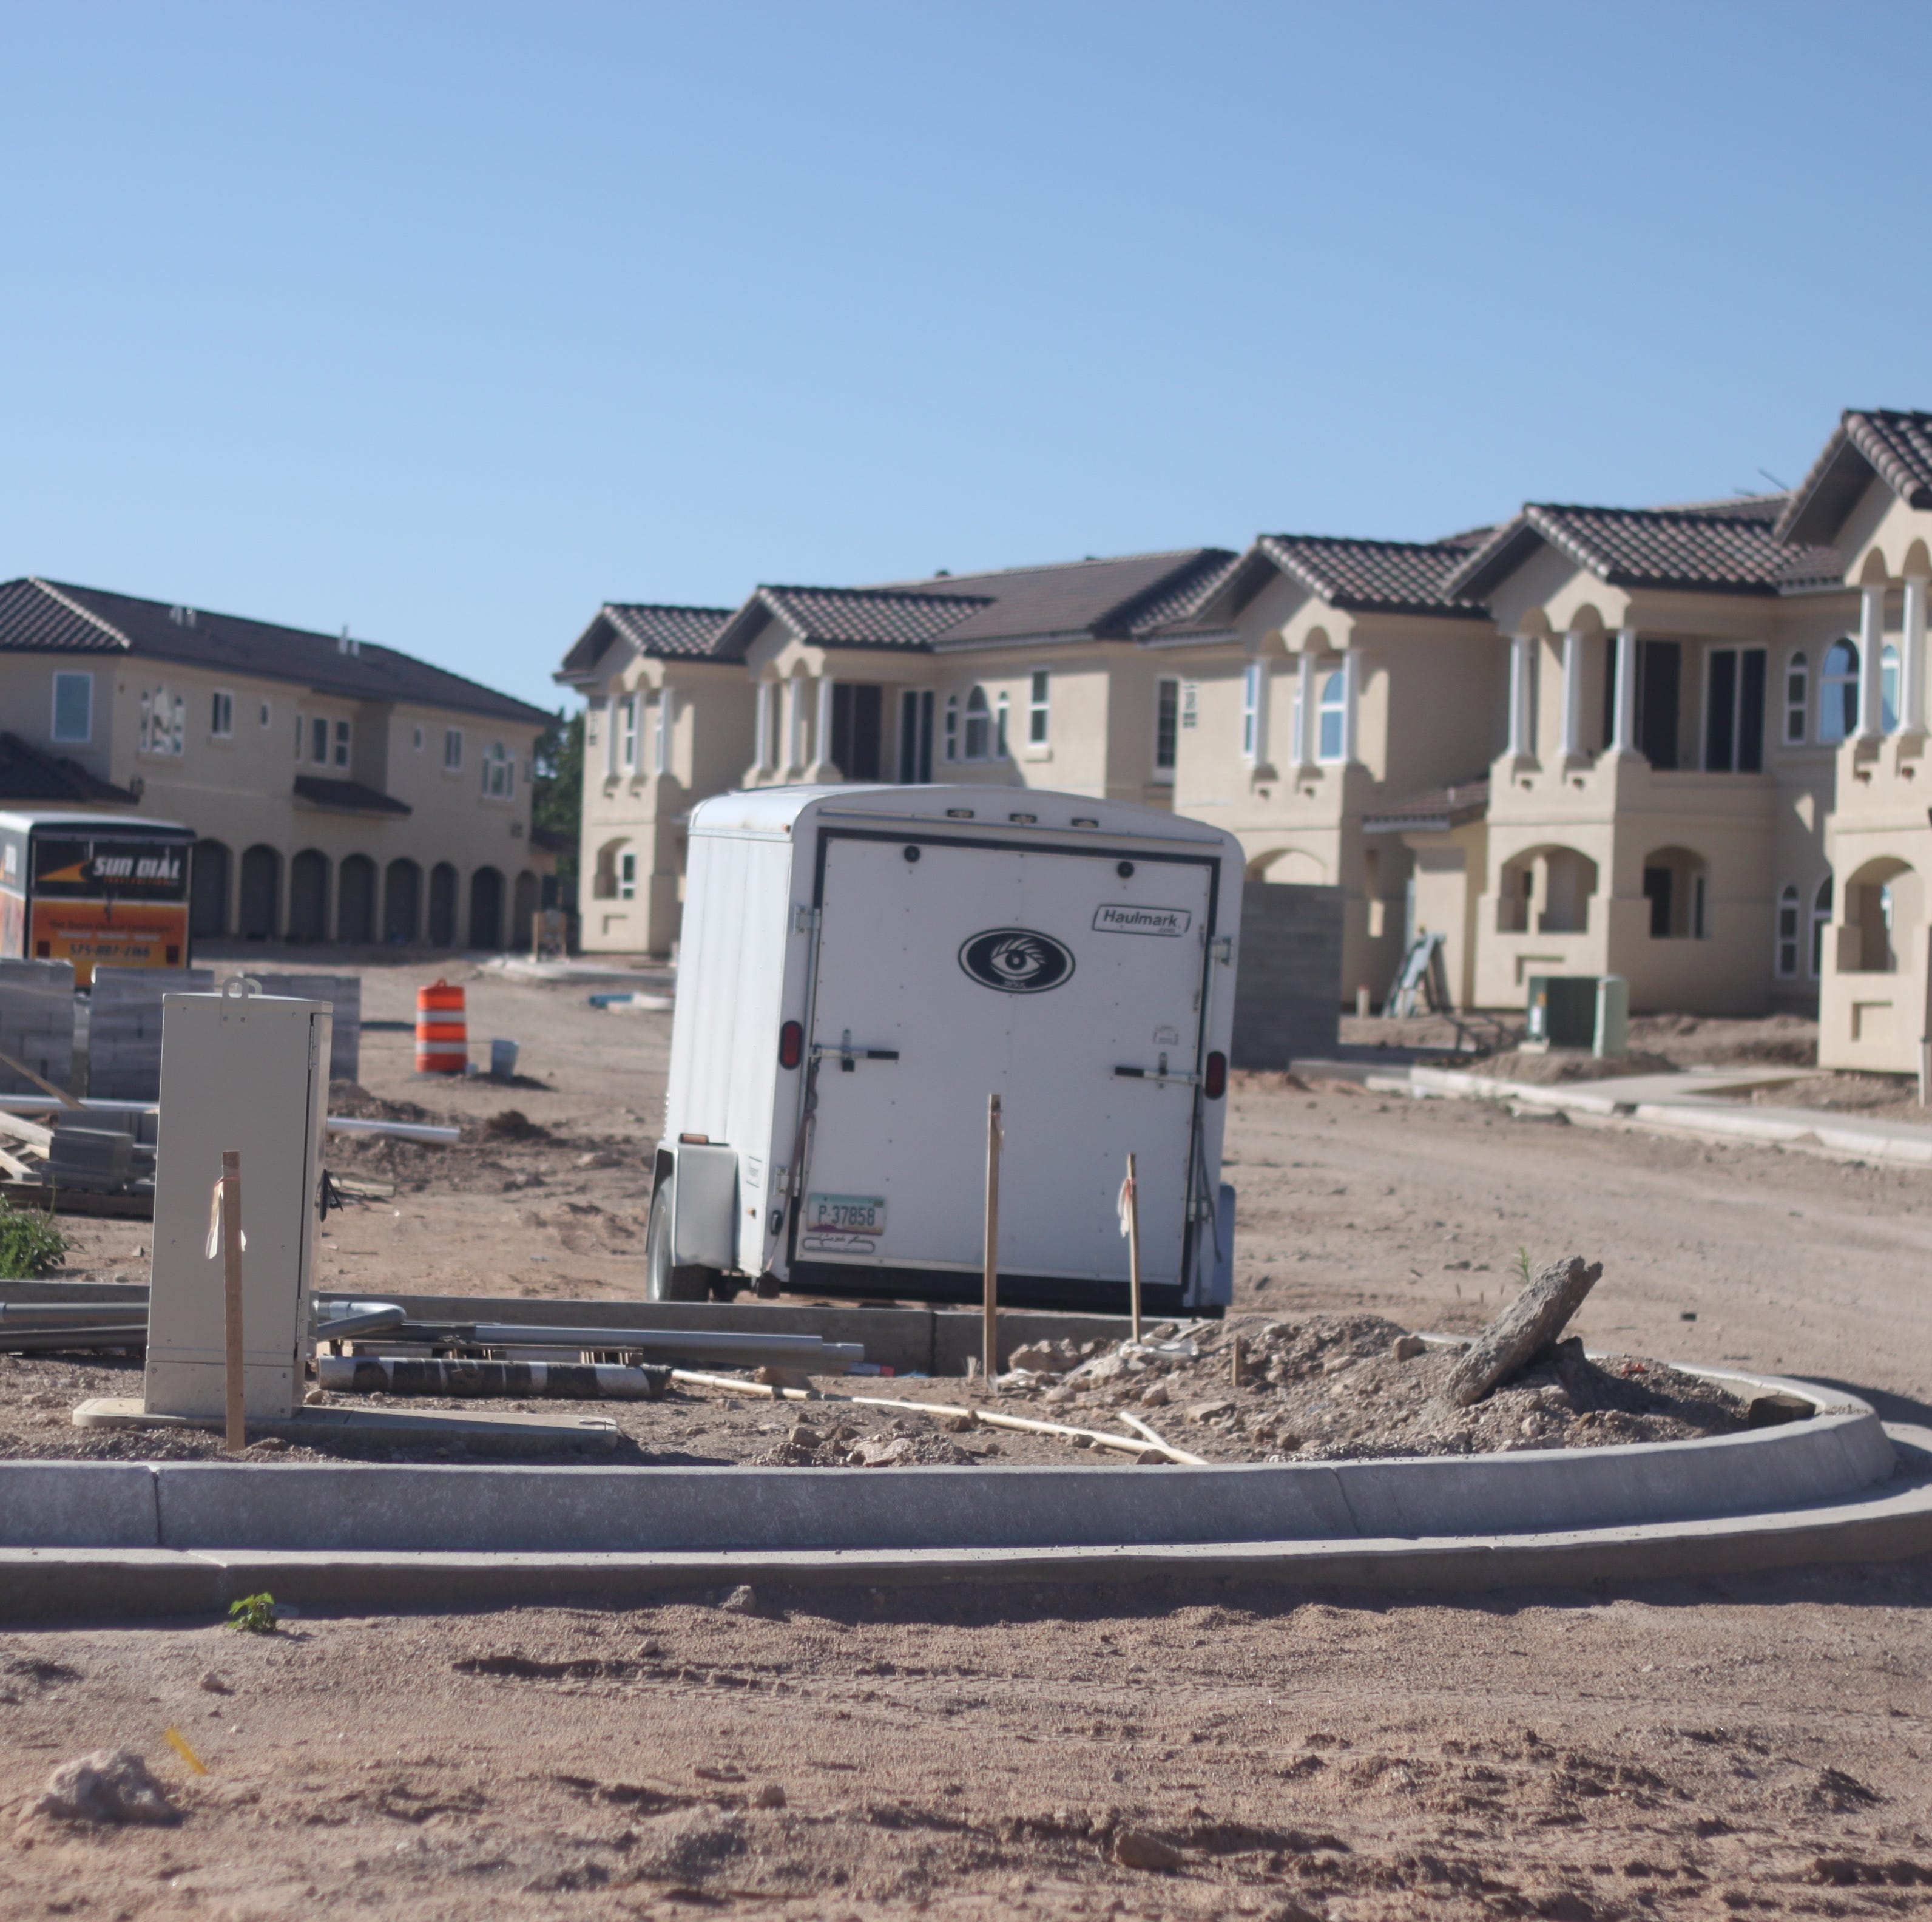 For sale?: NM housing market growing, sees biggest shifts in oil and gas regions